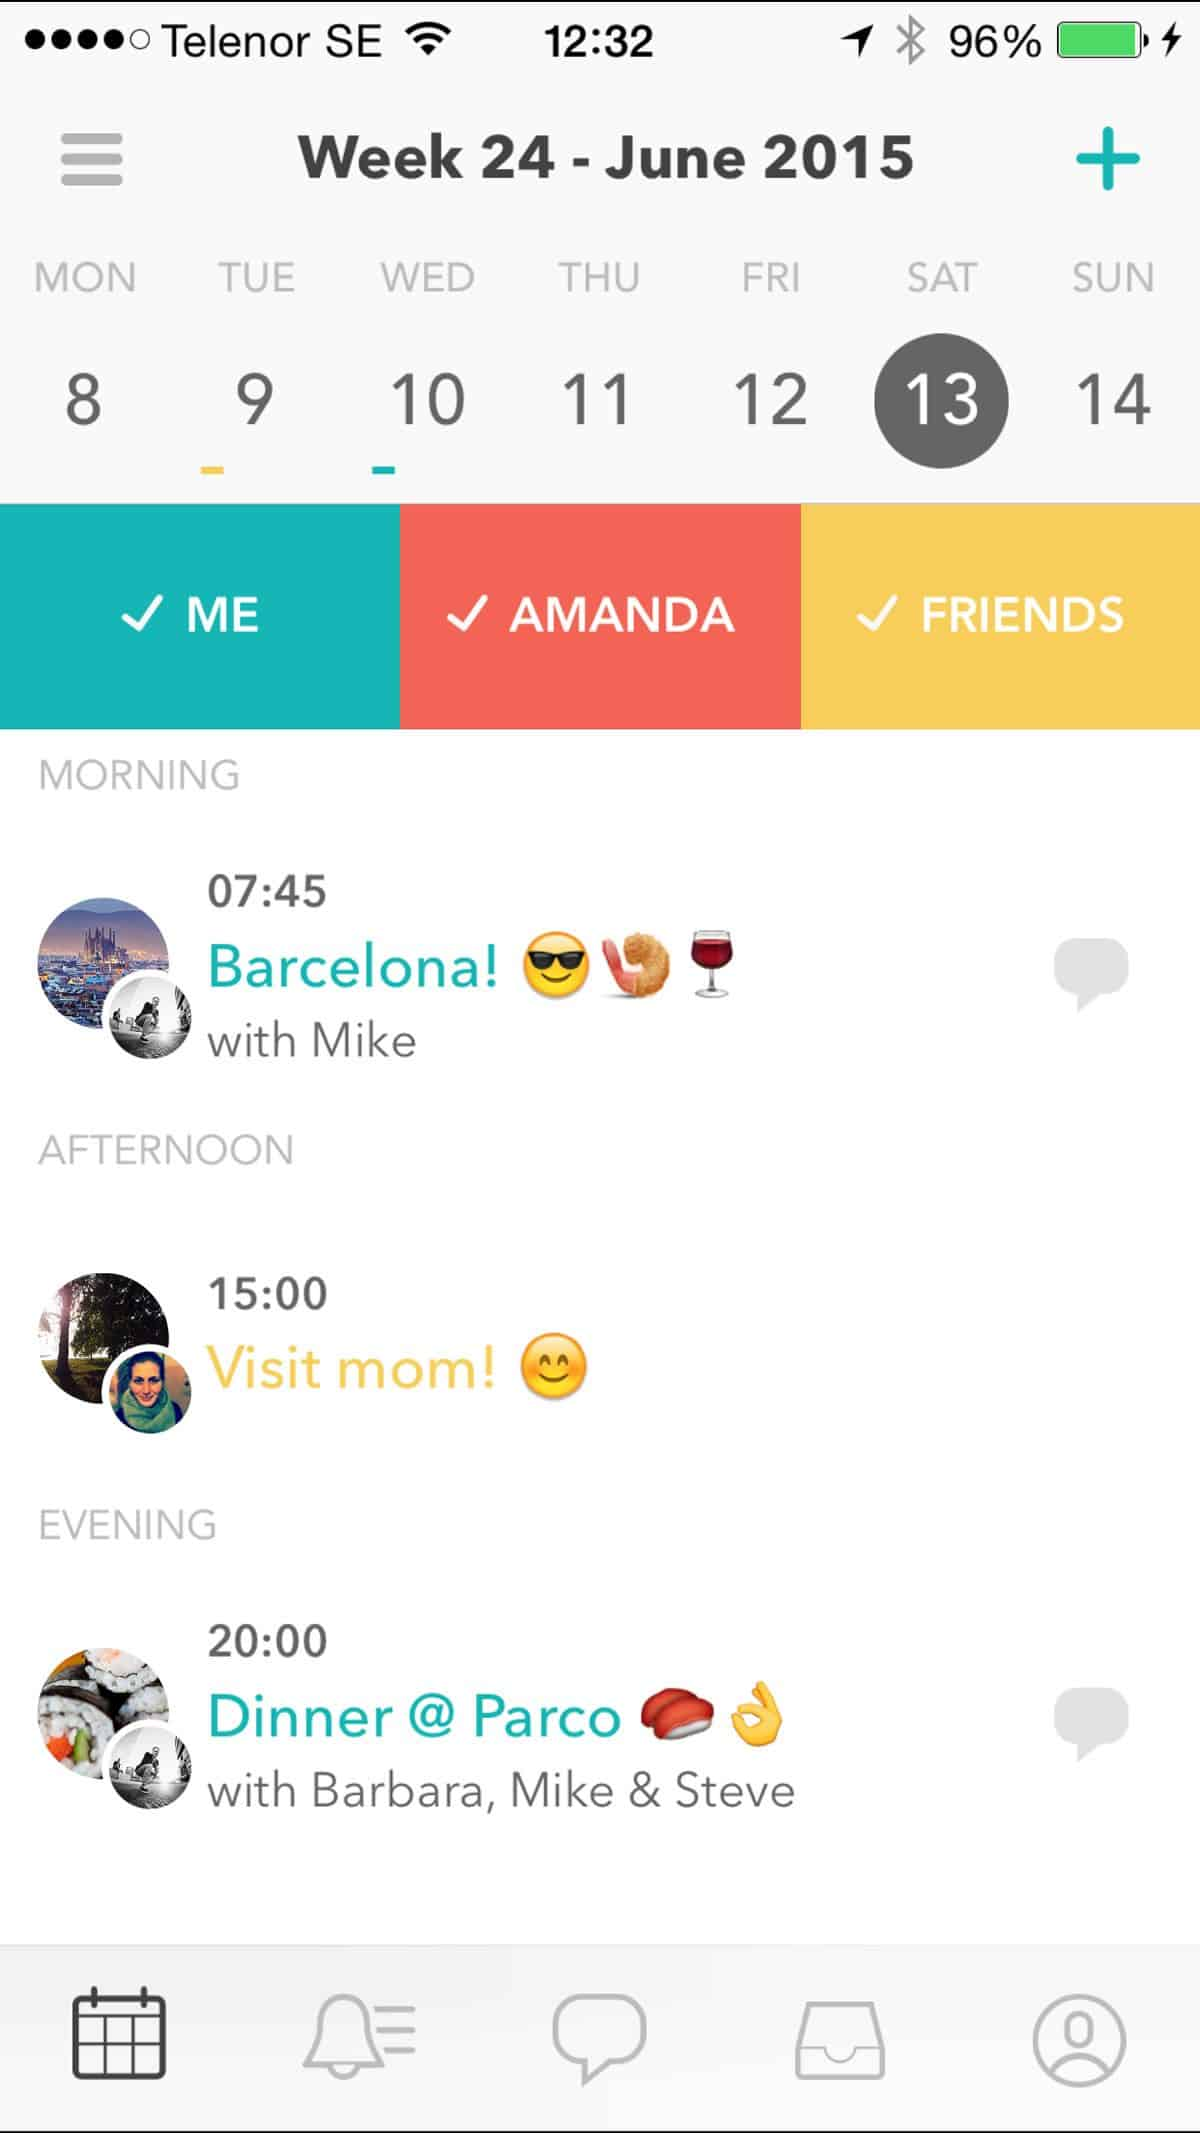 Raft uses bold and fun colors in their app design to encourage social sharing and planning